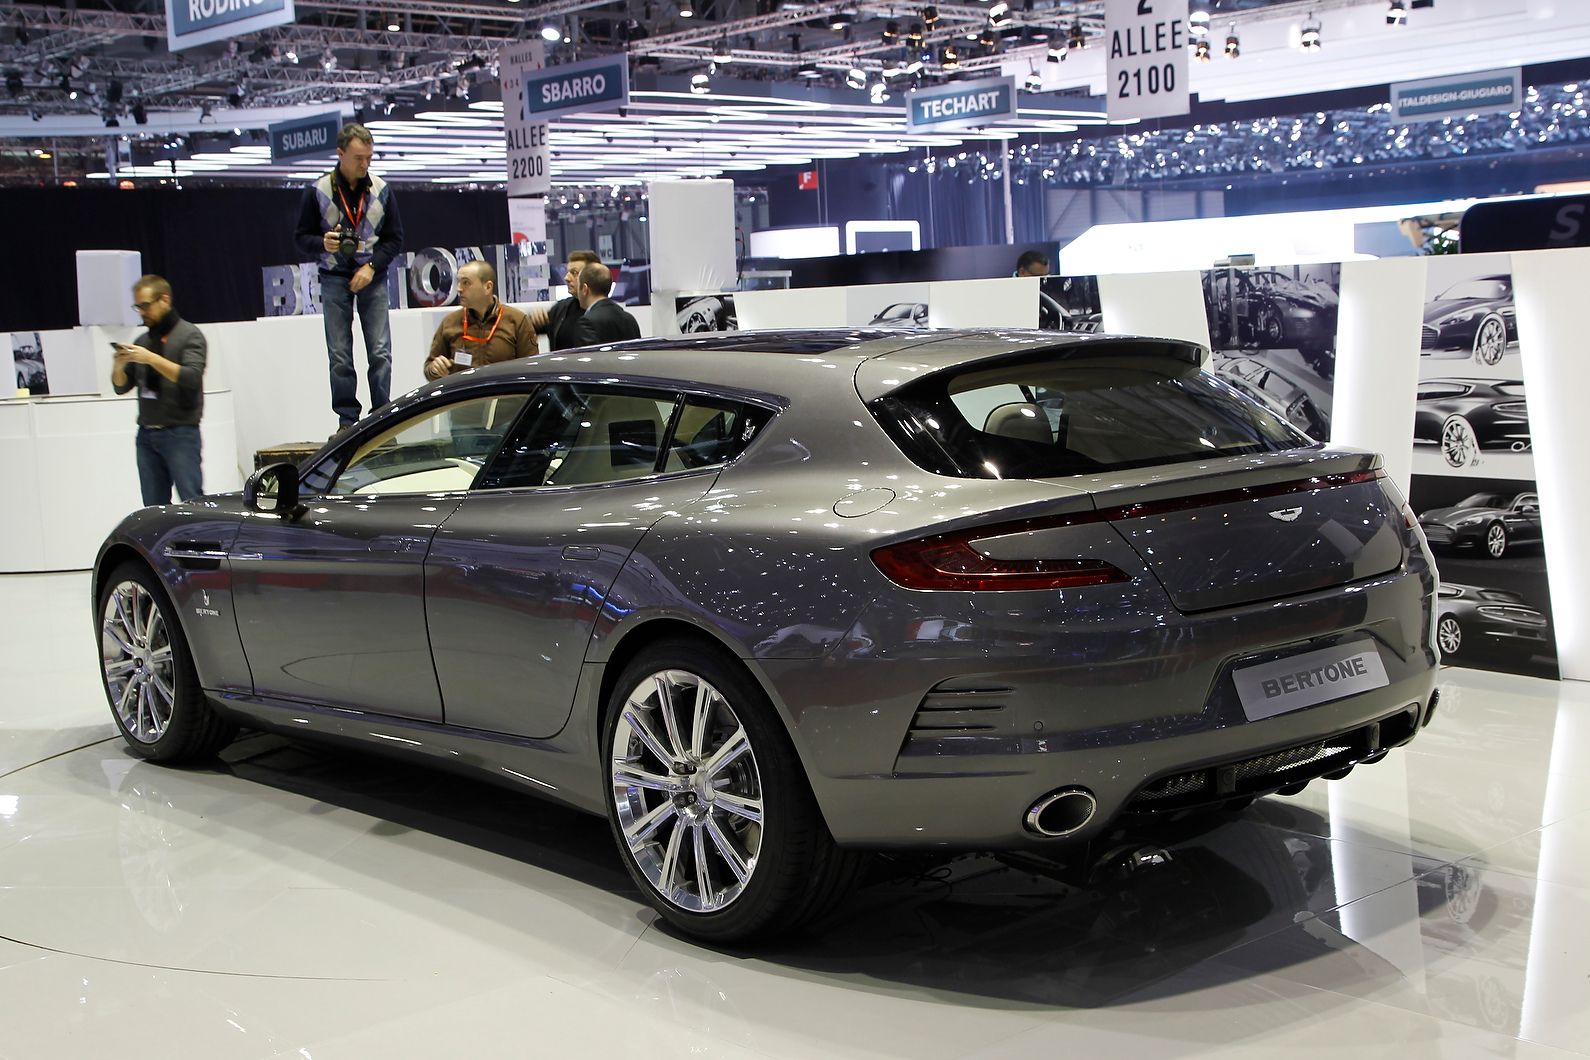 Bertone Jet 2+2 is based on an Aston Martin Rapide.